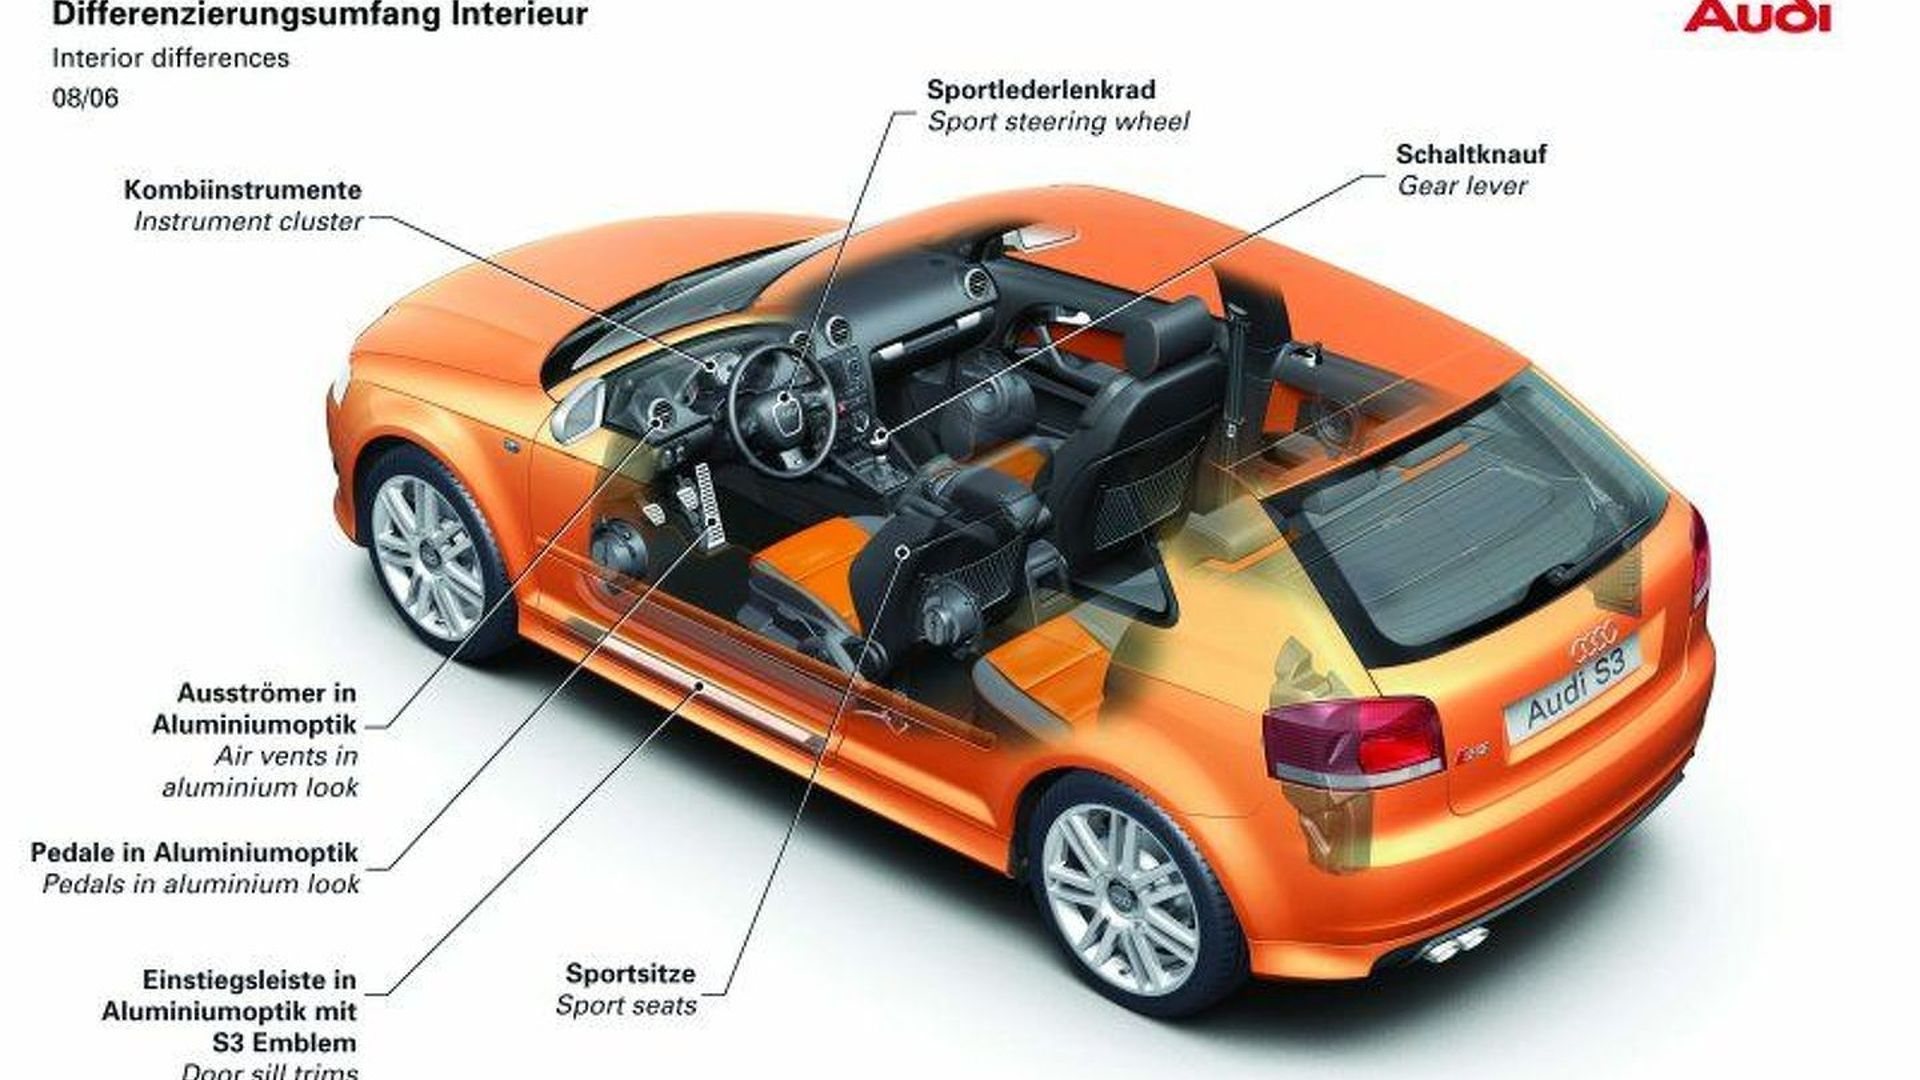 New Audi S3 In Detail | Motor1 com Photos